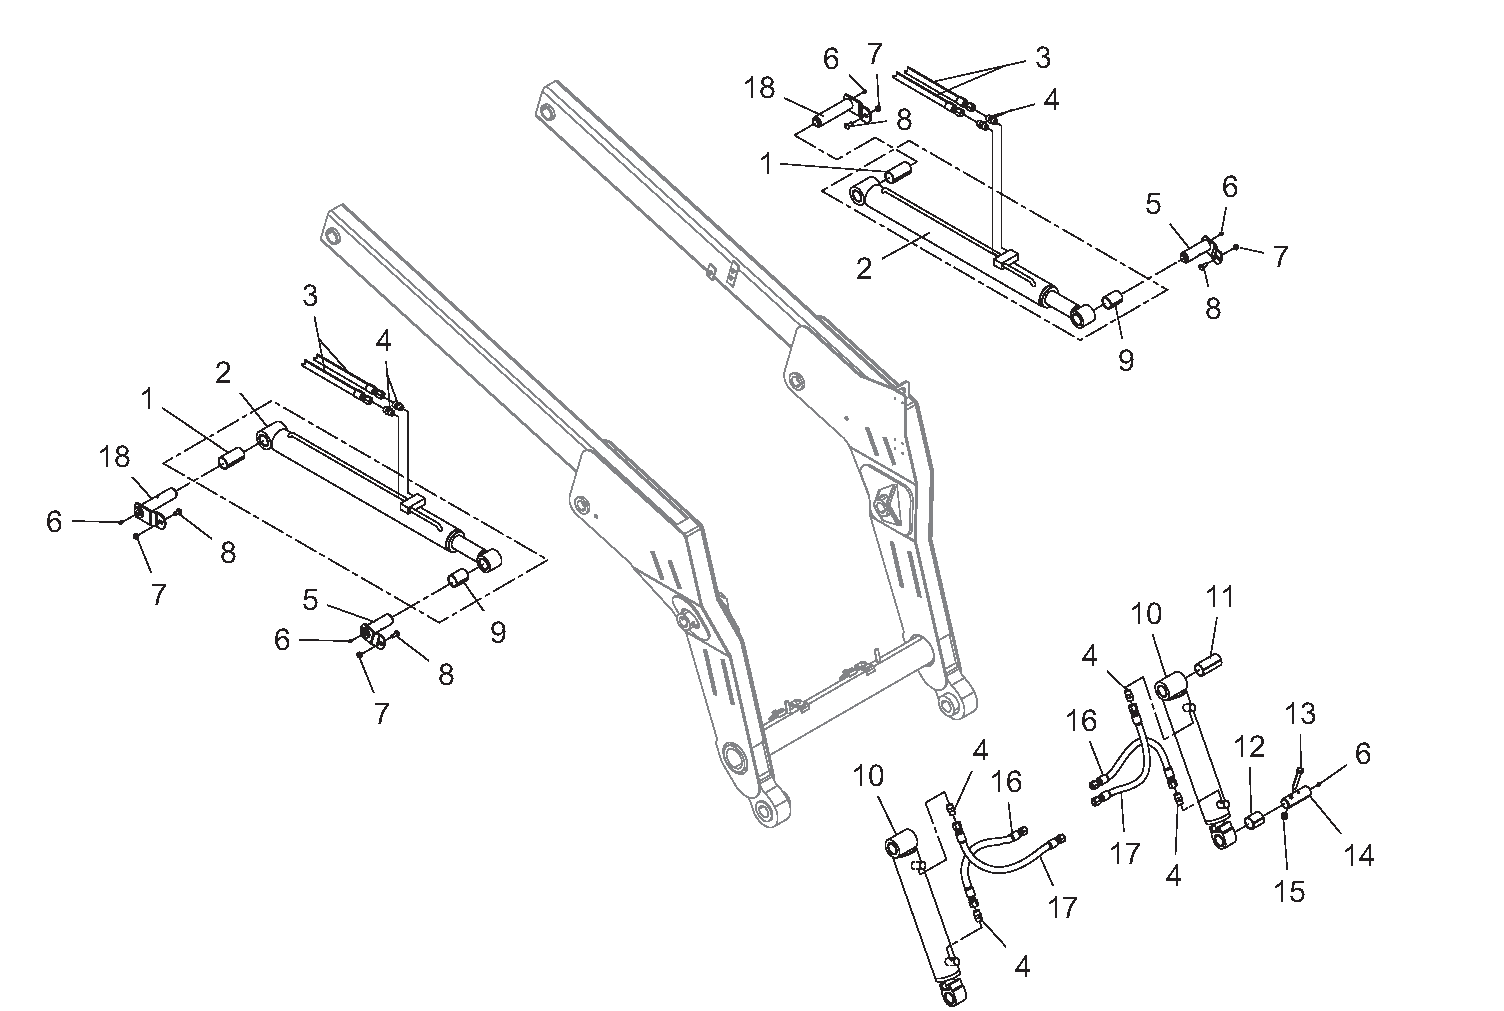 Diagram 3-4A Hydraulic Cylinders - Lift Arm and Tilt